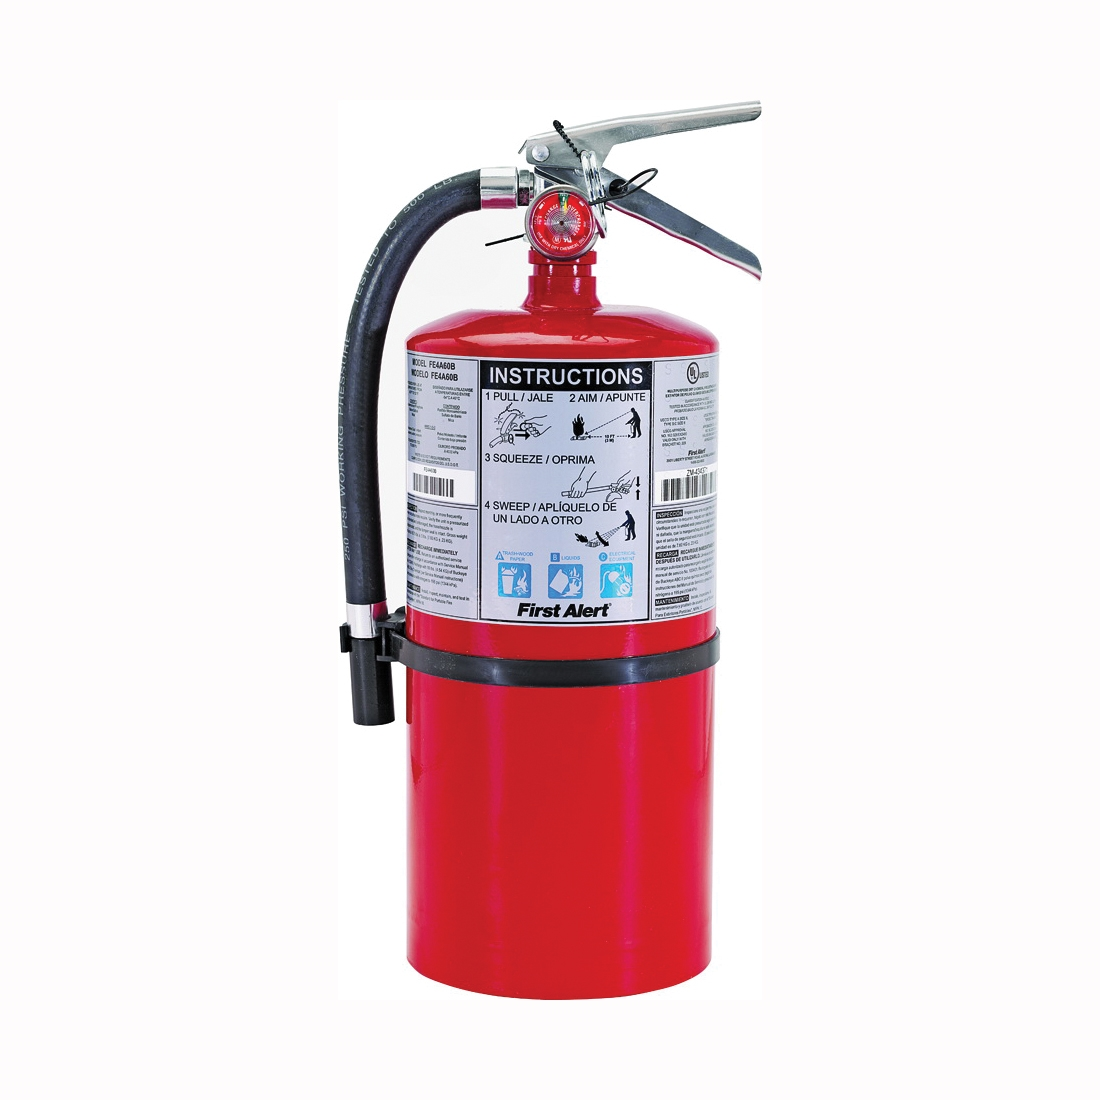 Picture of FIRST ALERT PRO10 Rechargeable Fire Extinguisher, 10 lb Capacity, Monoammonium Phosphate, 4-A:60-B:C Class